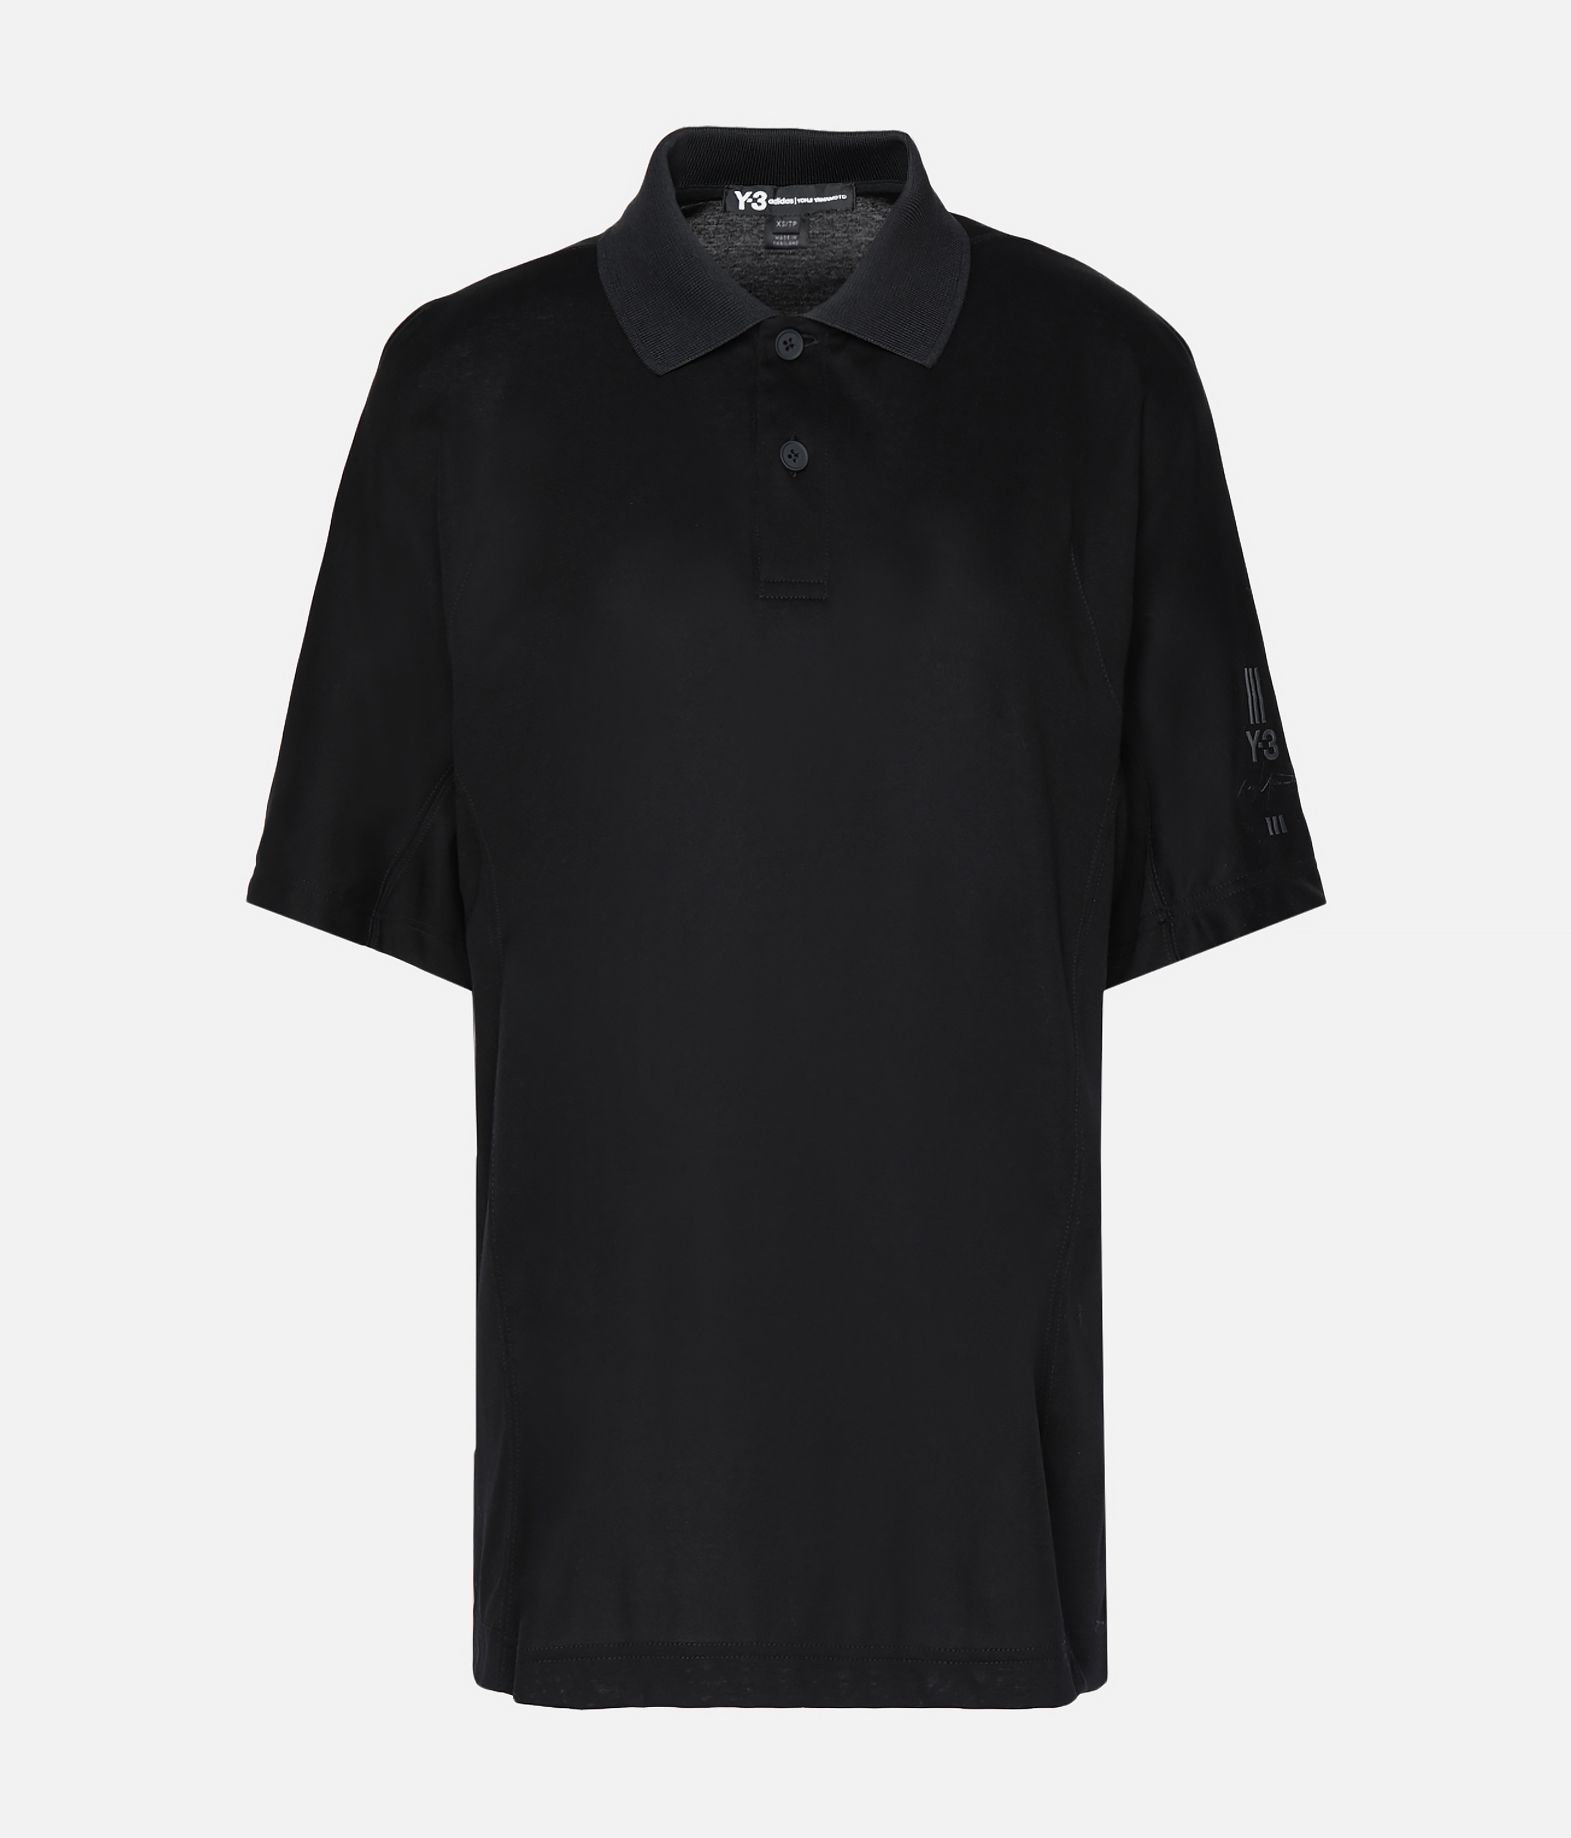 Y-3 Y-3 New Classic Polo Shirt  Polo Woman f